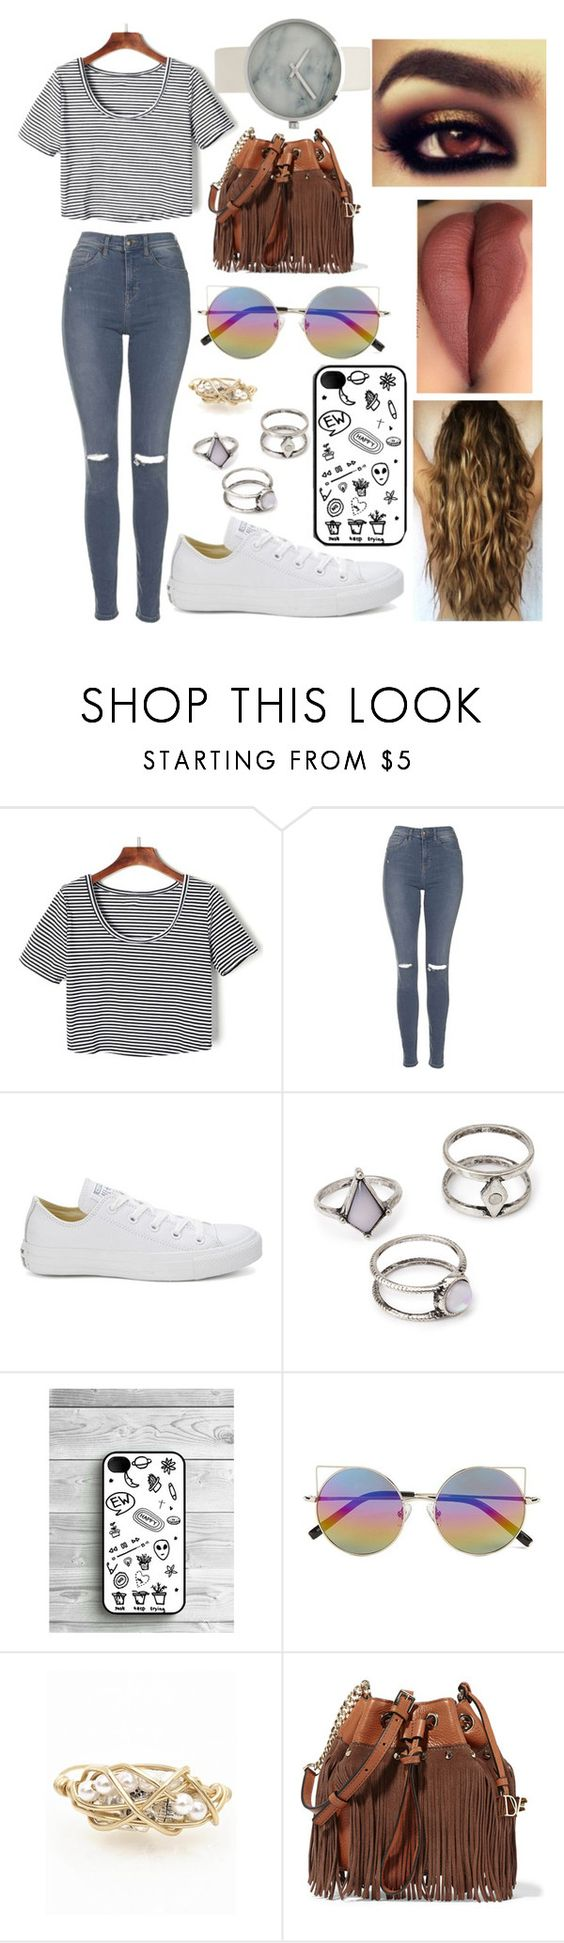 """Black&White"" by rebecapaynefarro on Polyvore featuring WithChic, Topshop, Converse, Forever 21, Linda Farrow, Kat&Bee and Diane Von Furstenberg"